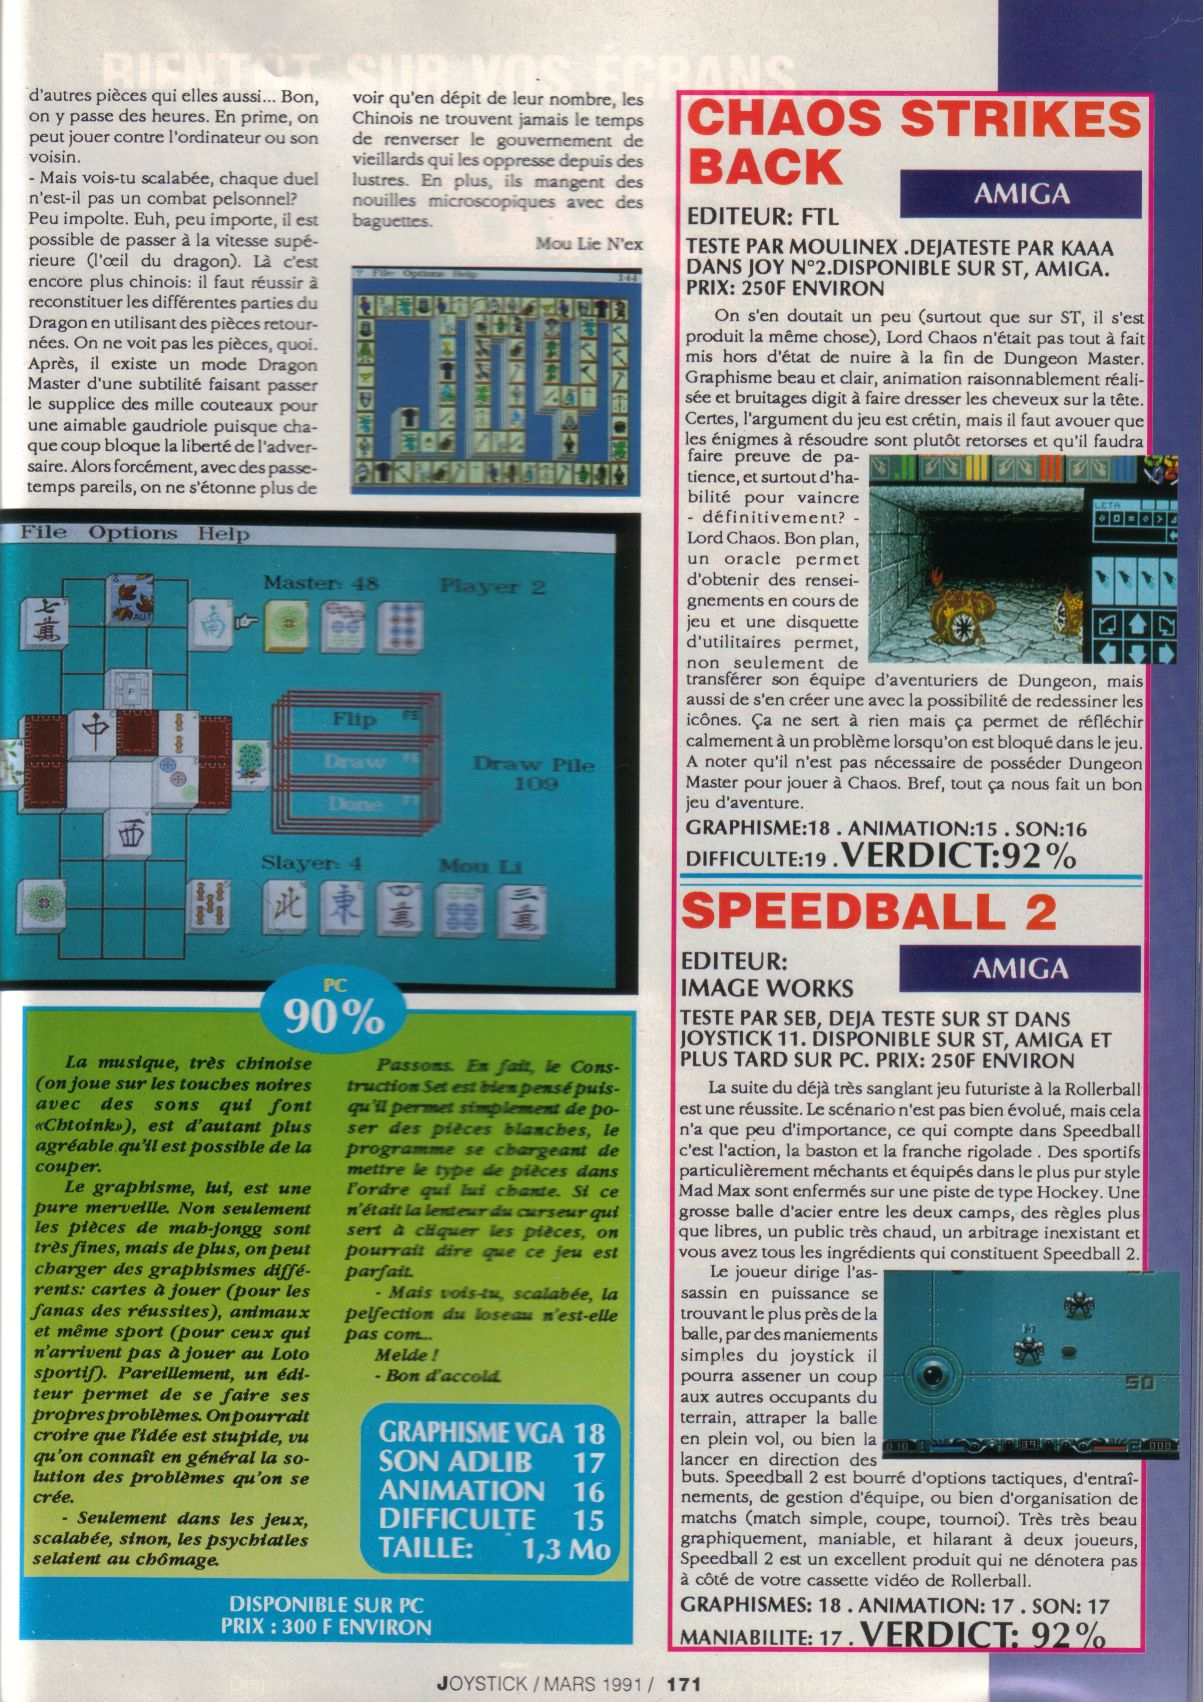 Chaos Strikes Back for Amiga Review published in French magazine 'Joystick', Issue #14, March 1991, Page 171